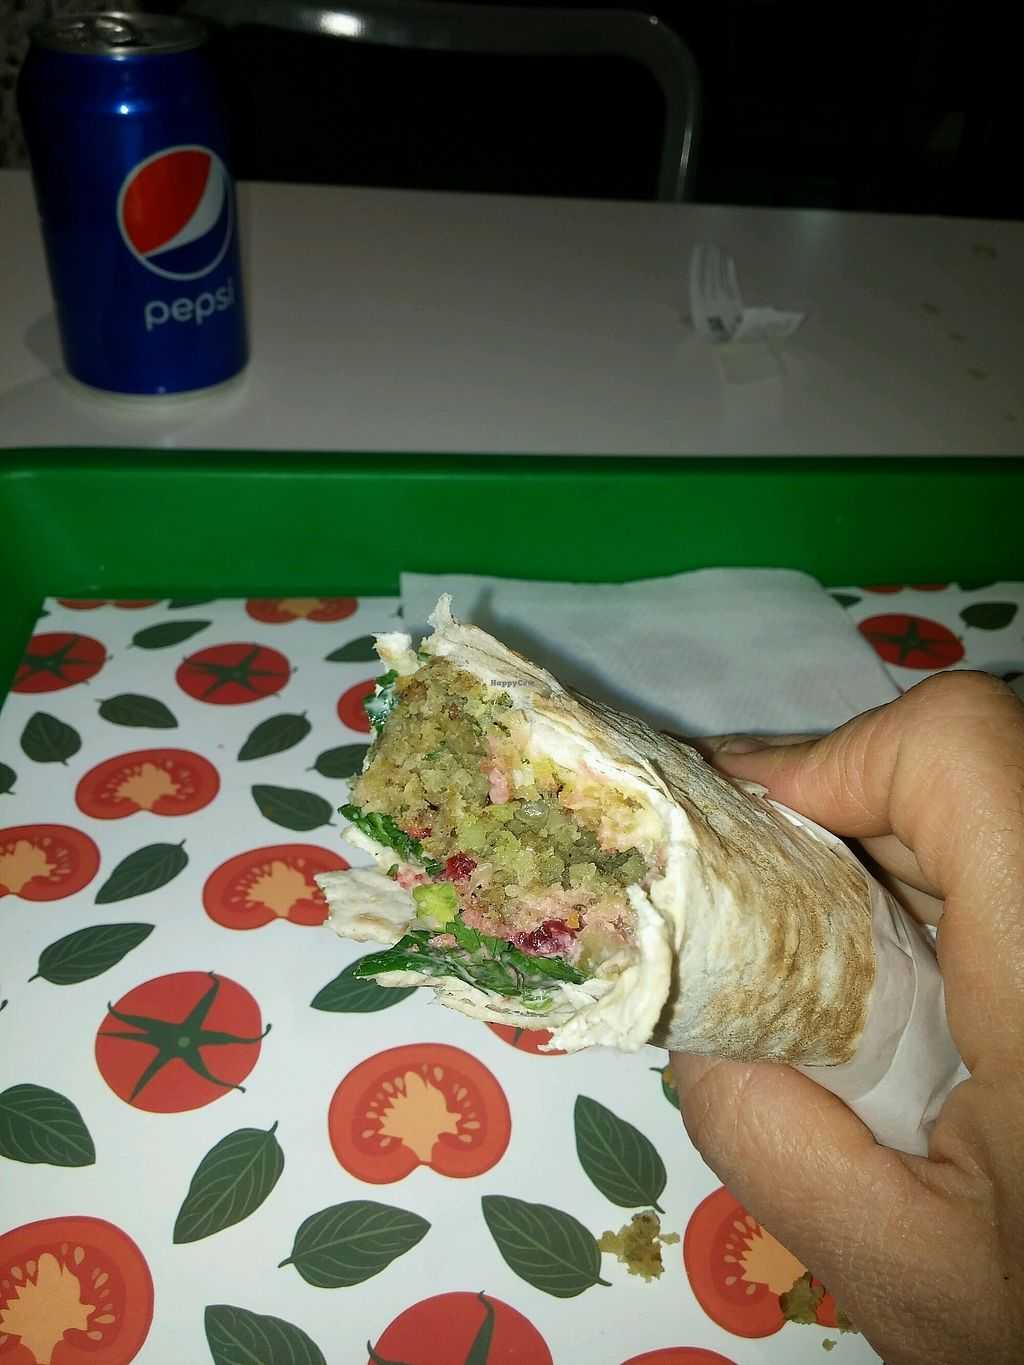 """Photo of Super Falafel - Balcescu  by <a href=""""/members/profile/GalitNesher"""">GalitNesher</a> <br/>super falafel <br/> January 24, 2018  - <a href='/contact/abuse/image/56402/350521'>Report</a>"""